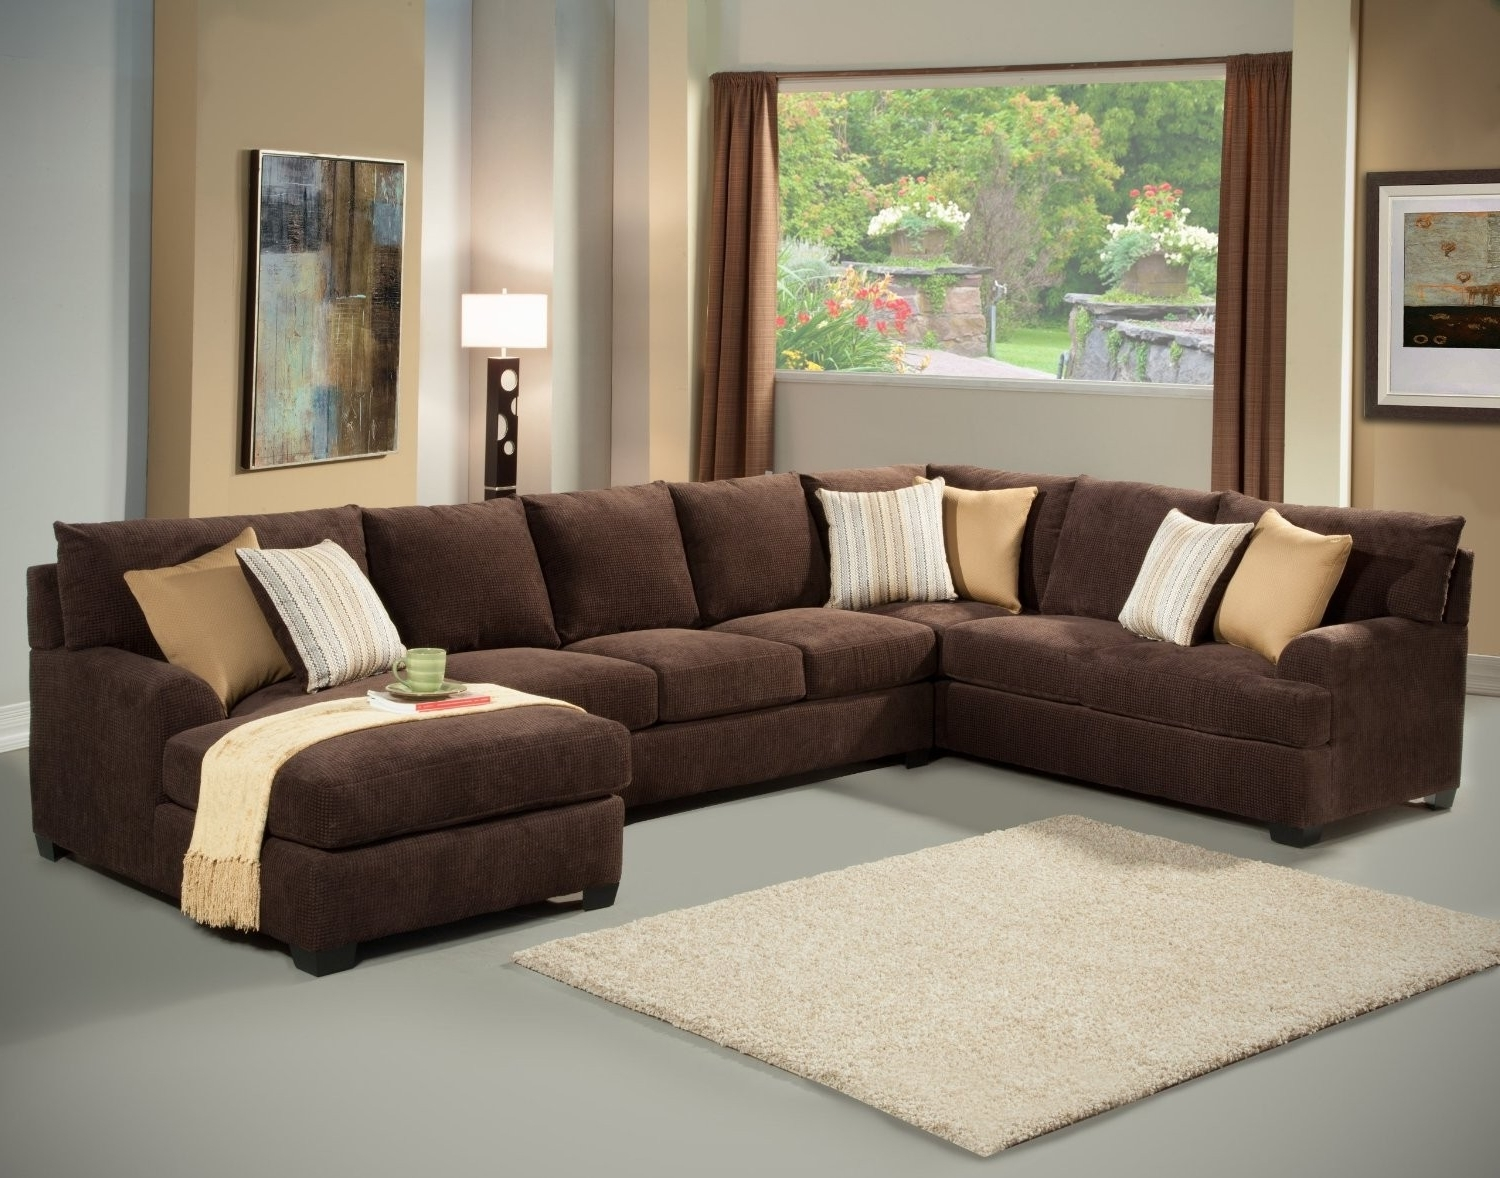 Lovely Sectional Sofa Phoenix – Buildsimplehome Inside Most Popular Phoenix Sectional Sofas (View 9 of 20)